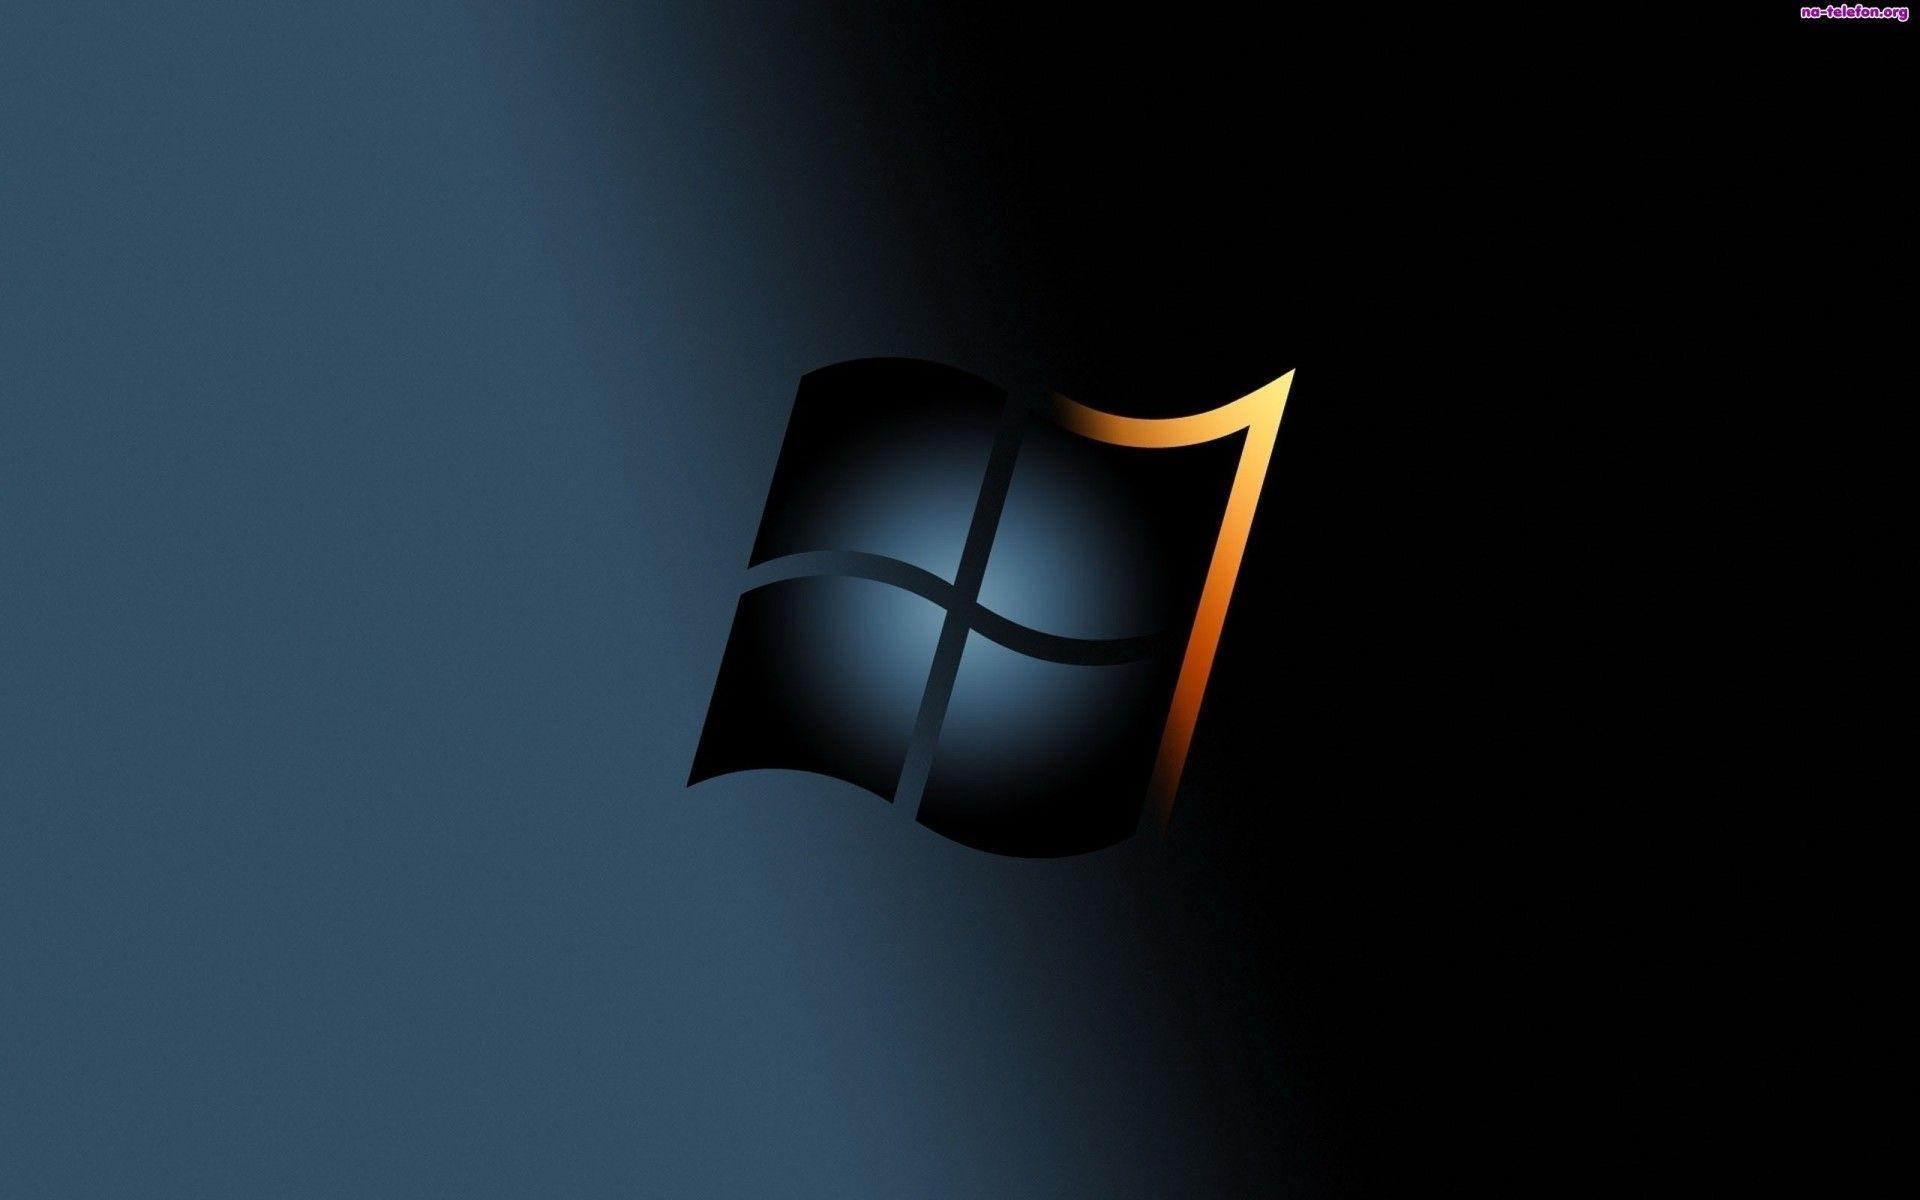 35 Elegant and Amazing Windows Wallpapers